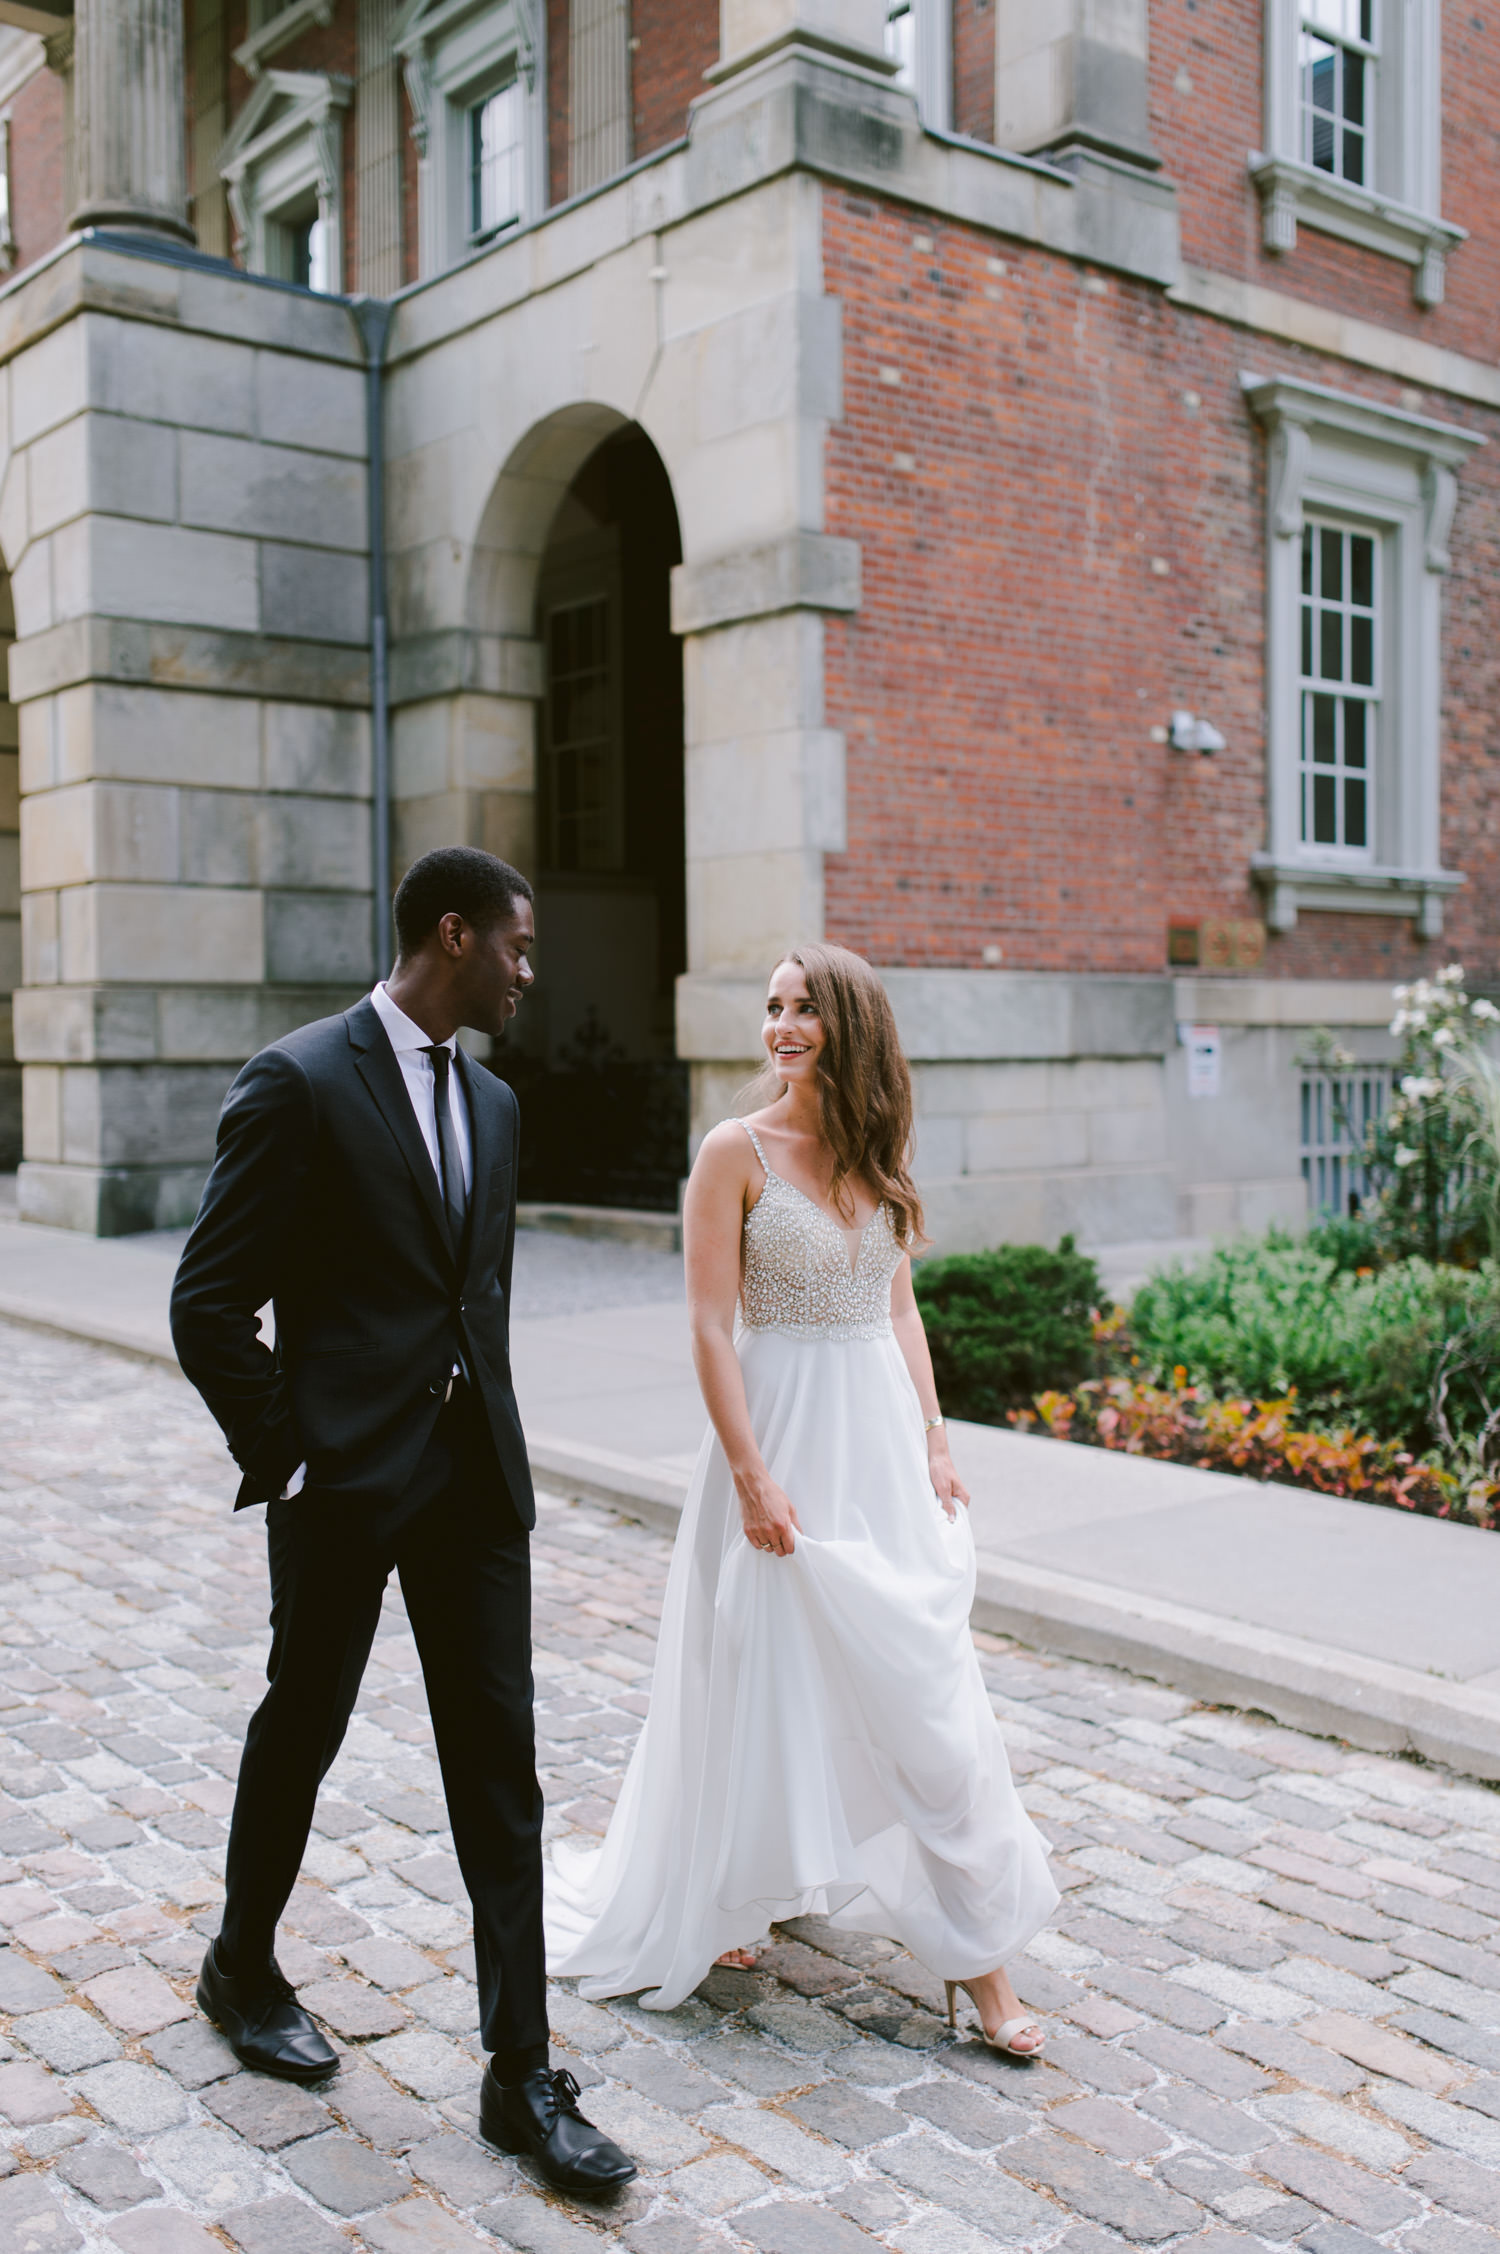 Editorial luxurious wedding photography at Osgoode Hall Toronto couple walking